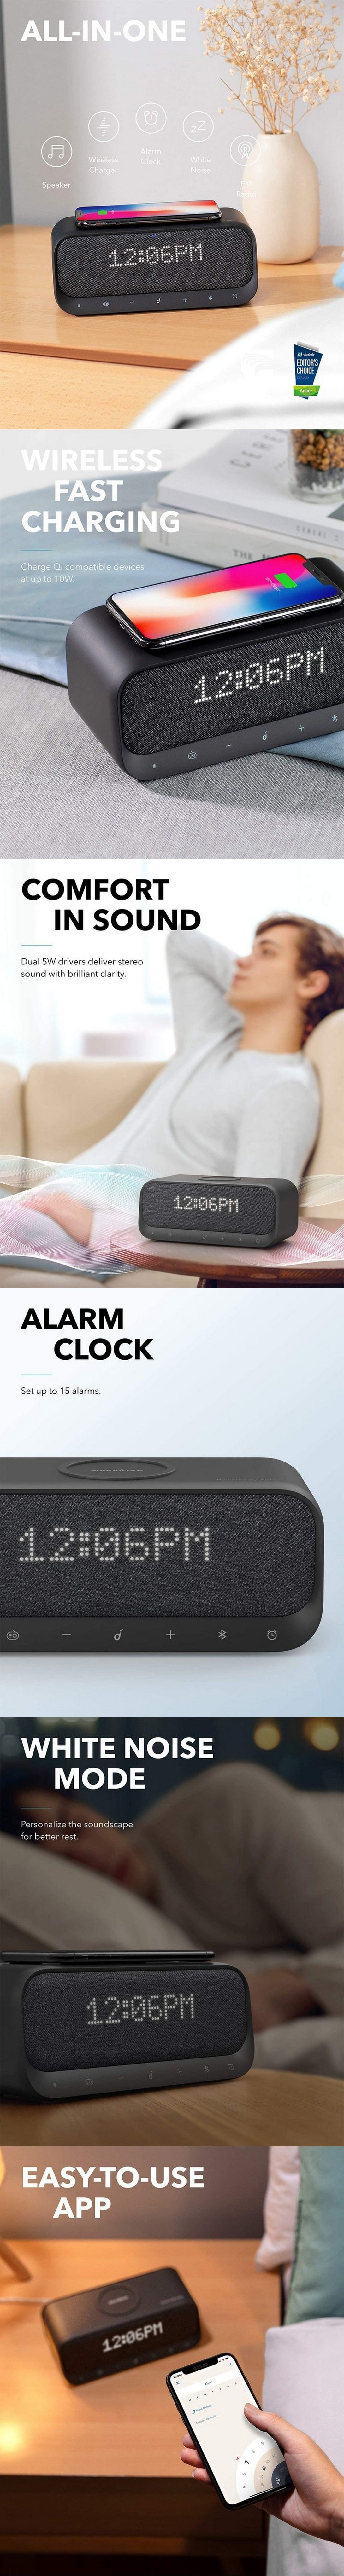 ANKER Audio Wakey 藍牙音箱